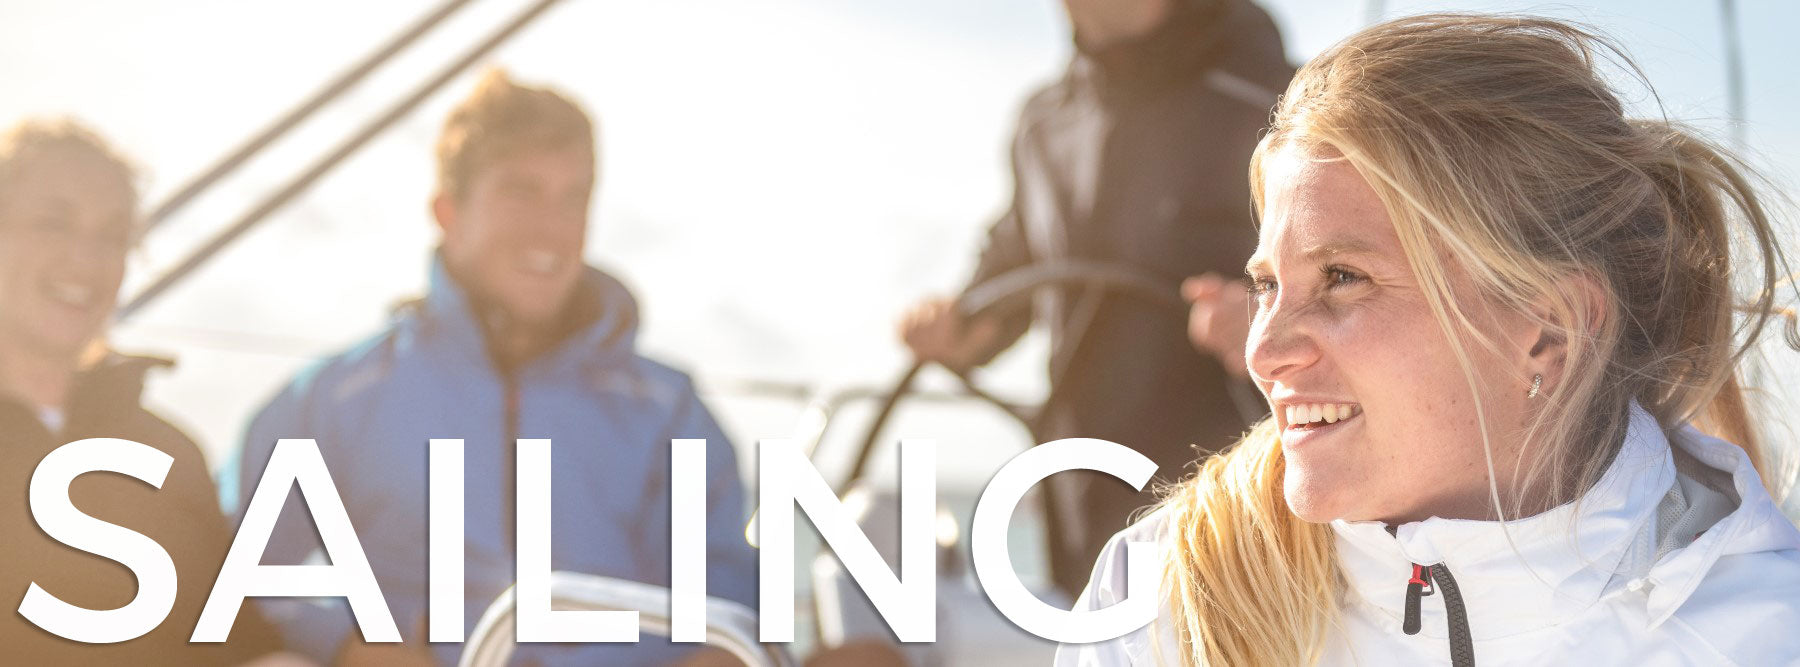 Sailing - Leisure wear for casual weekenders and serious yachtsmen